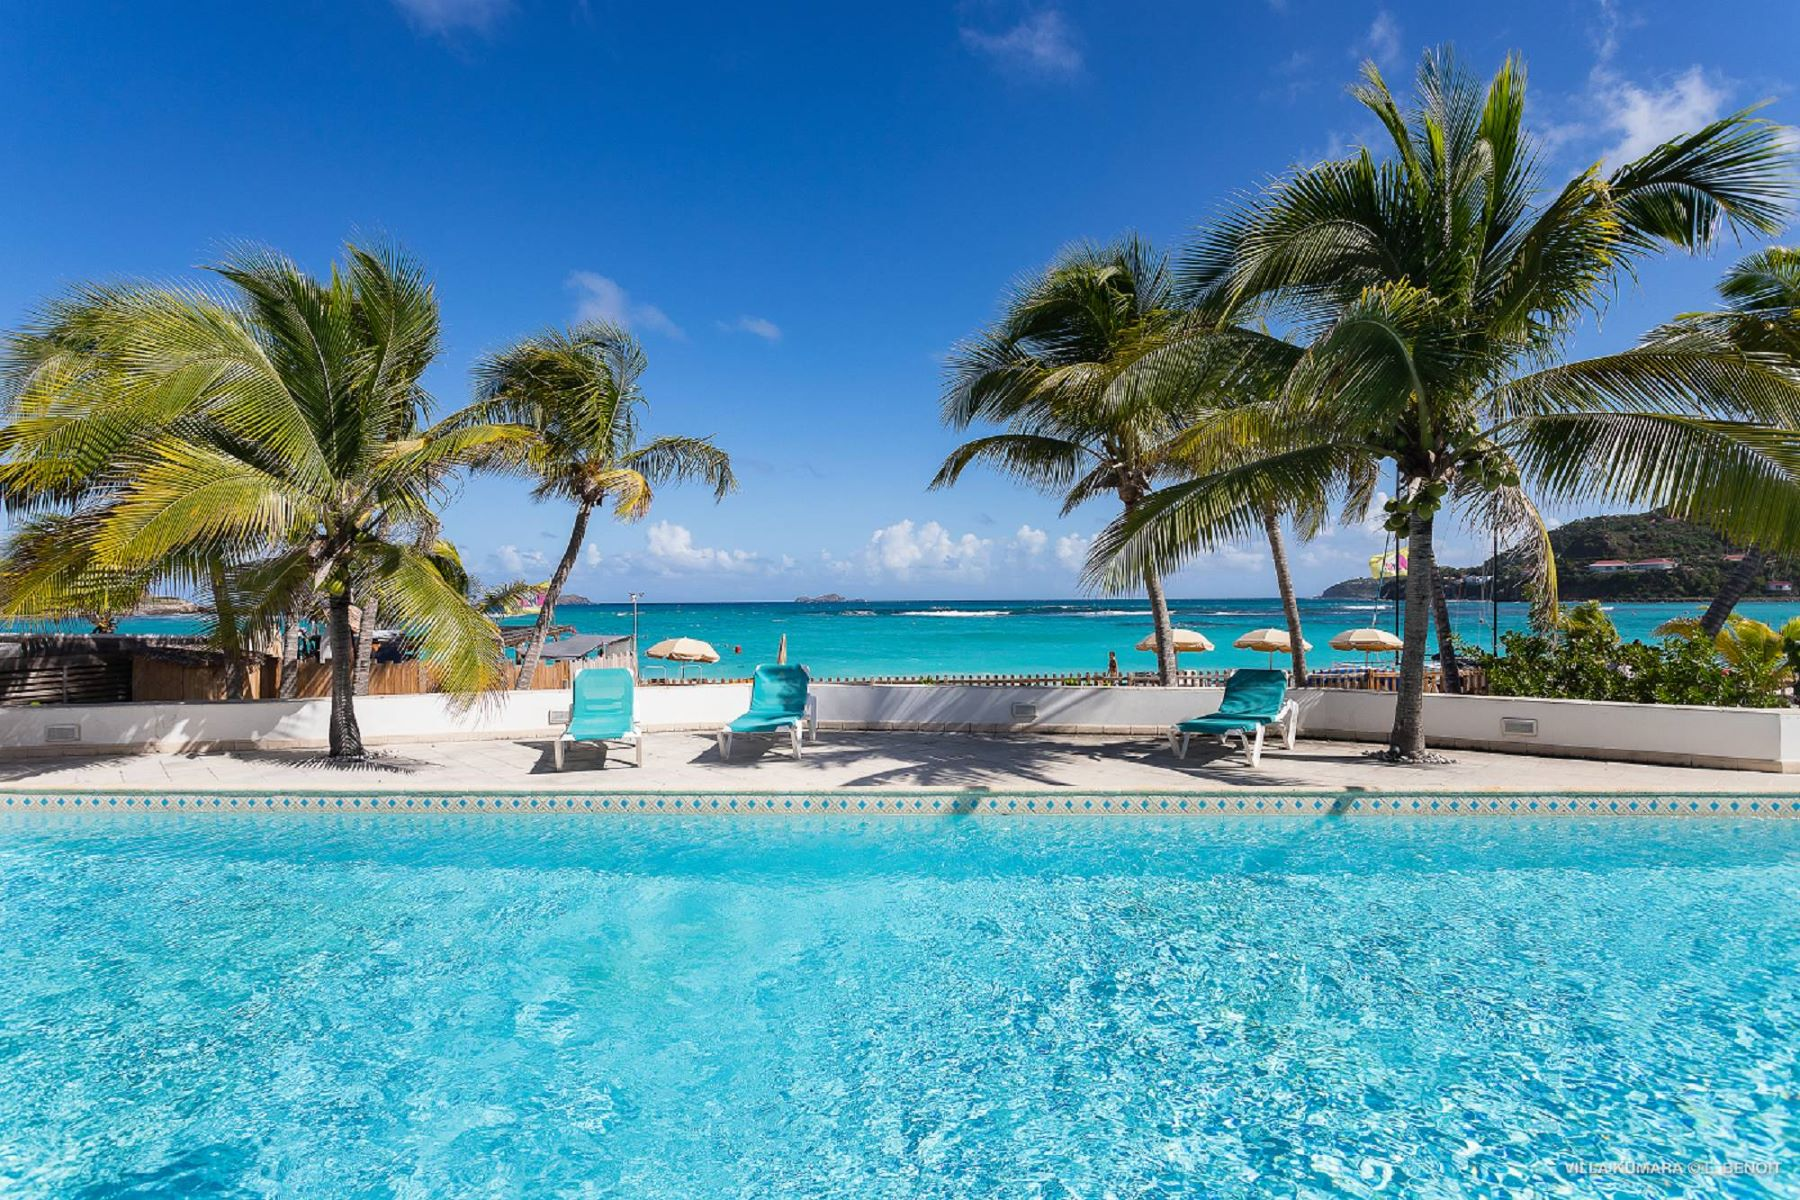 Single Family Homes for Sale at Kumara Saint Jean Other St. Barthelemy, Cities In St. Barthelemy 97133 St. Barthelemy